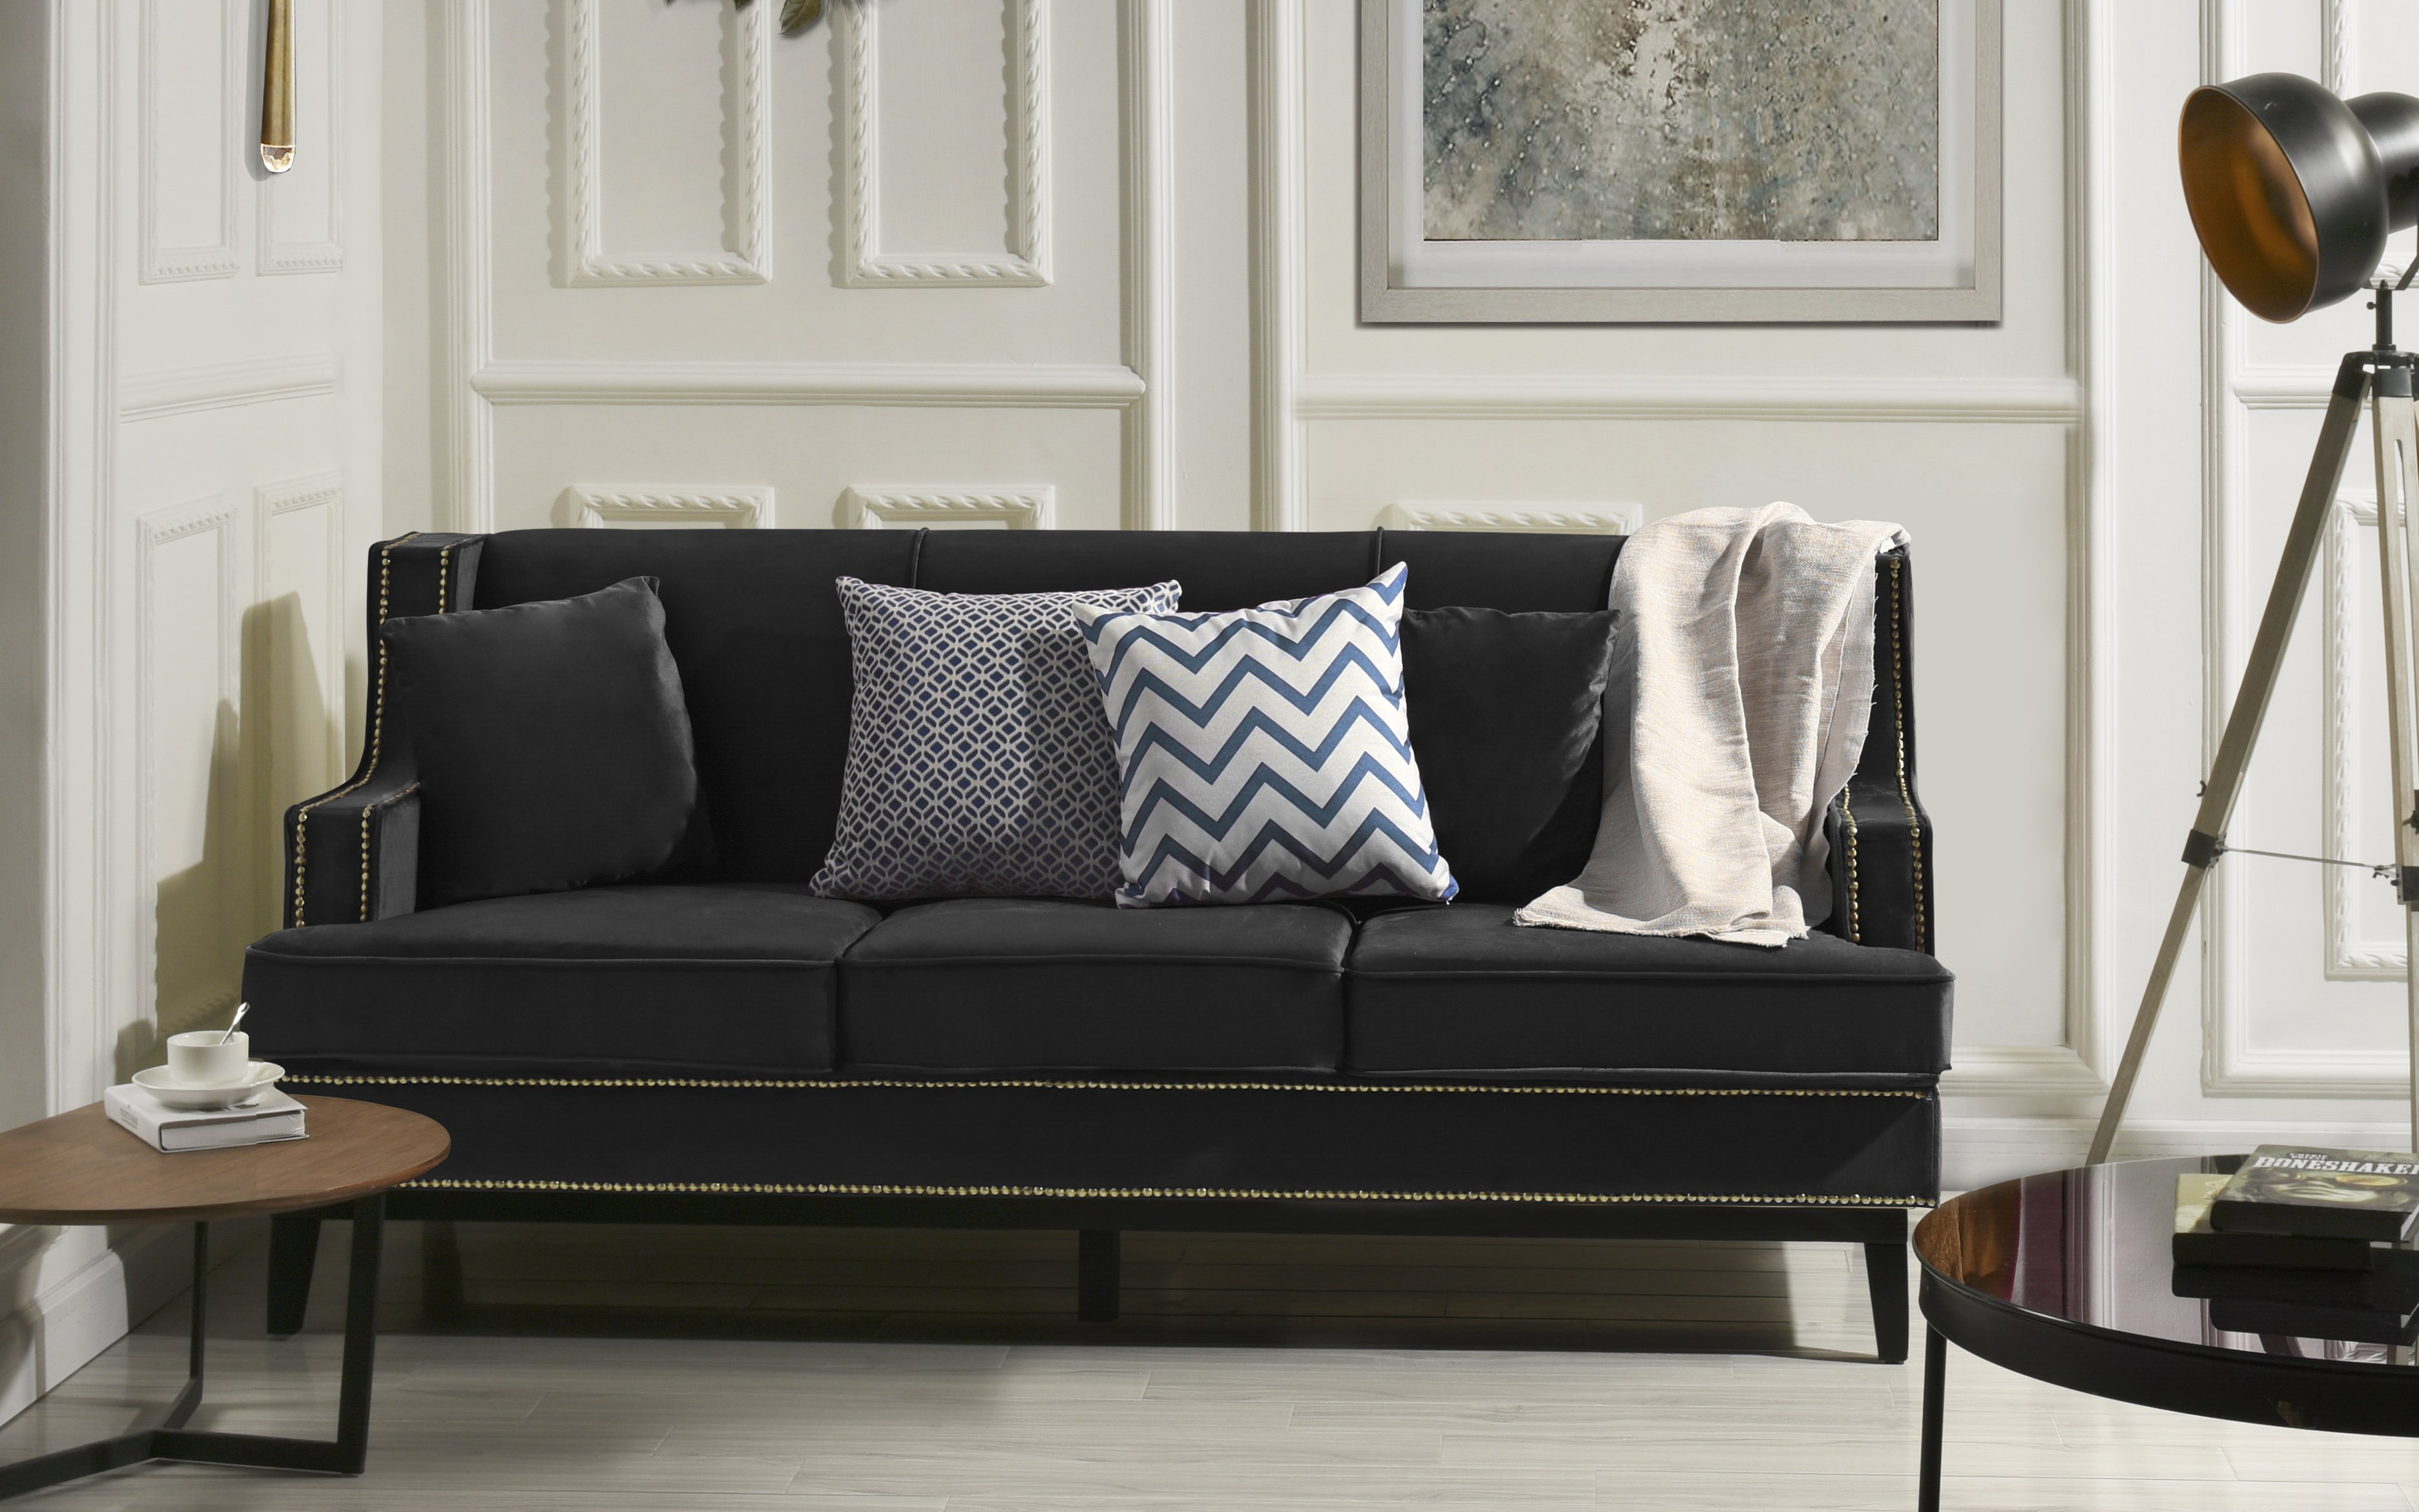 Details about Modern Vintage Style Soft Velvet Sofa, Couch with Nailhead  Trim Detail (Black)